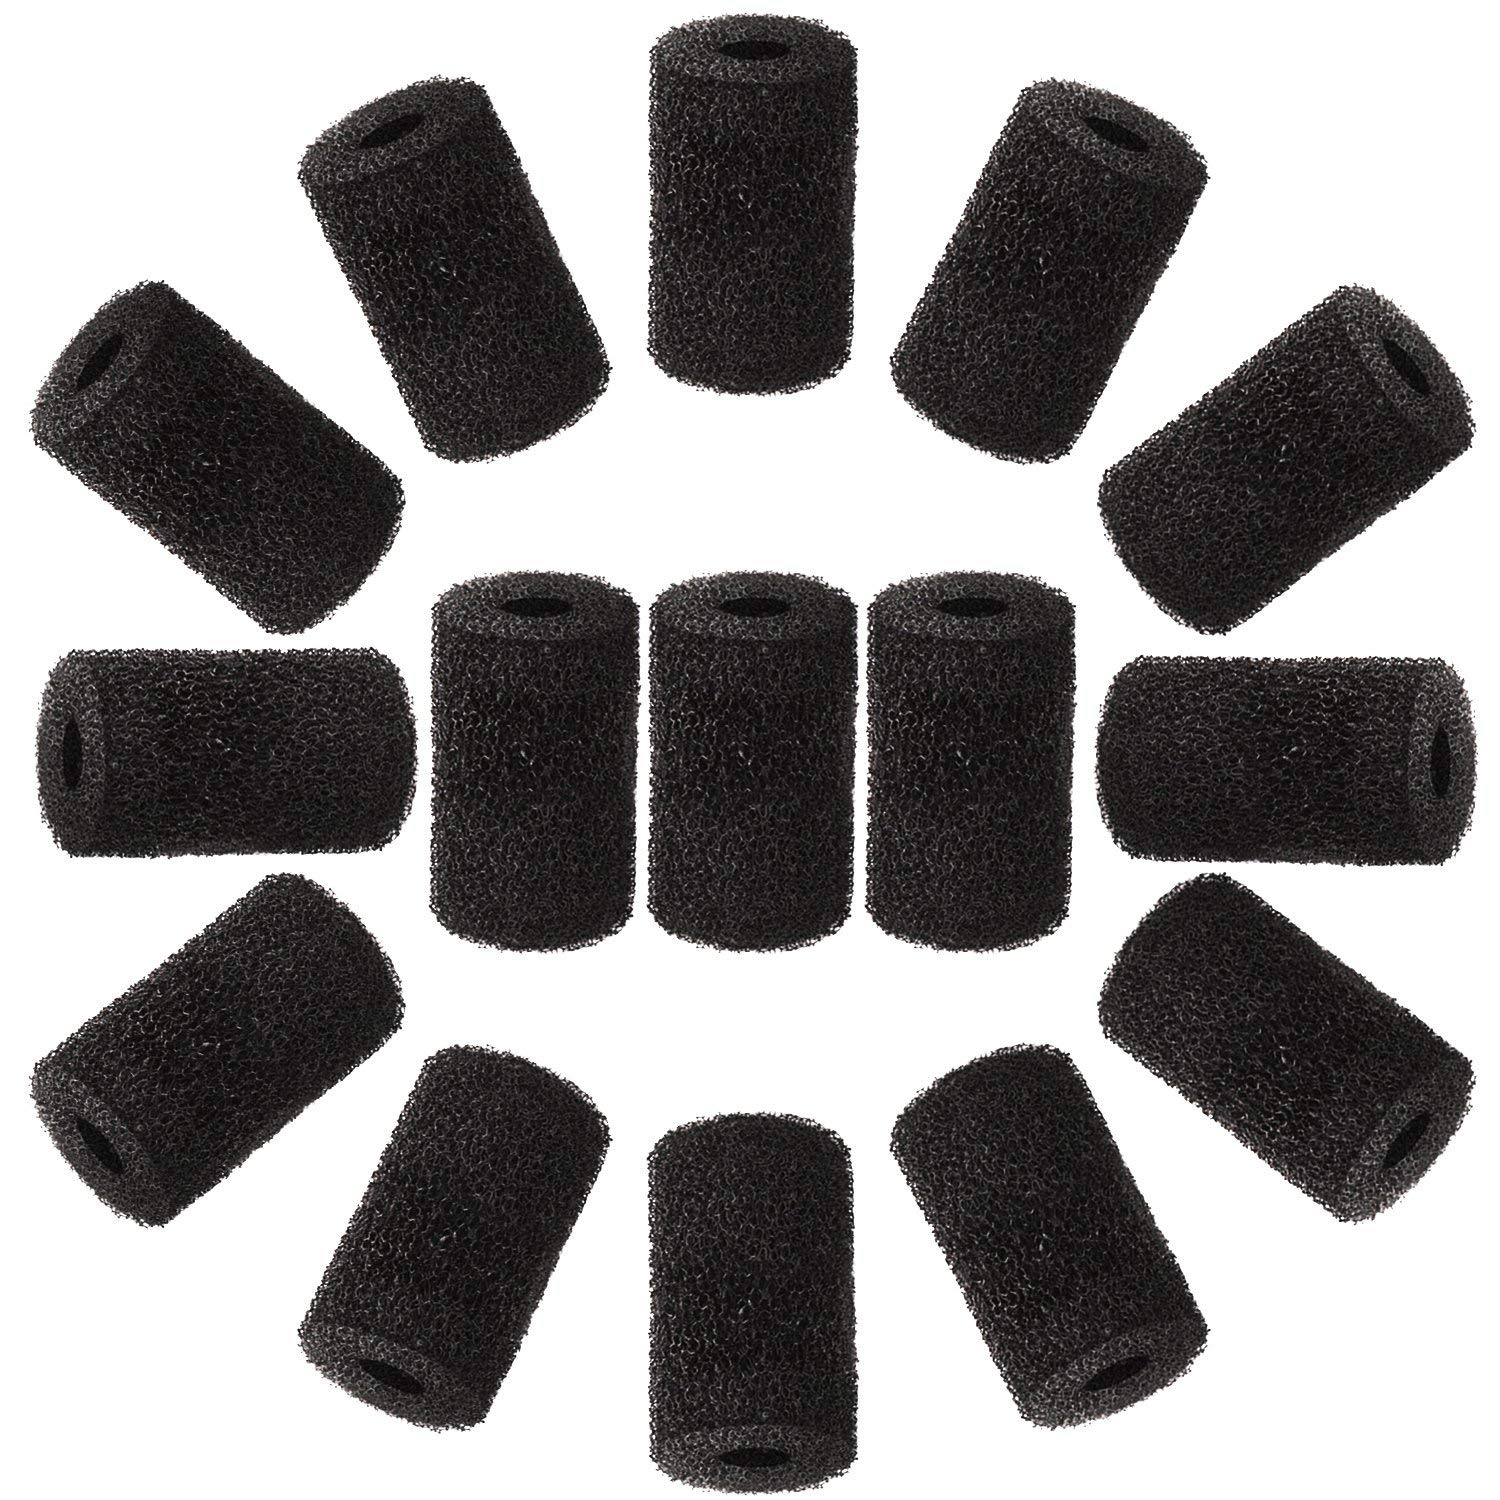 WXJ13 15 Packs Pool Cleaner Hose Tail Sweep Hose Scrubber for Sweep Pool Cleaner, Black